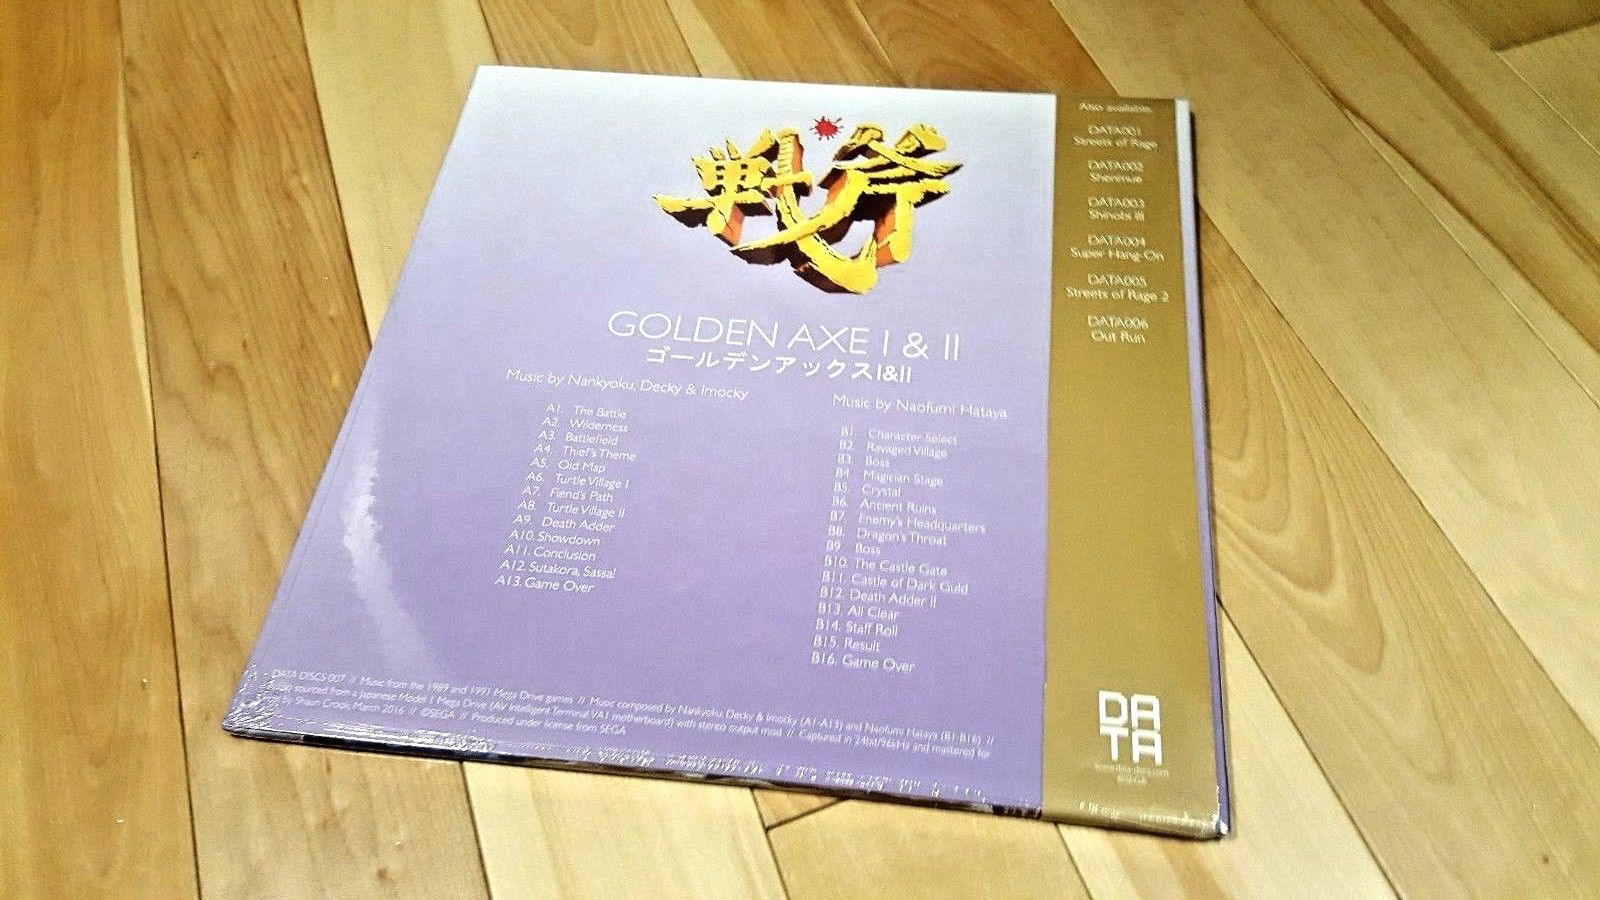 Golden Axe I & II Soundtrack OST Limited Edition Data Discs New LP Data Discs PS 2